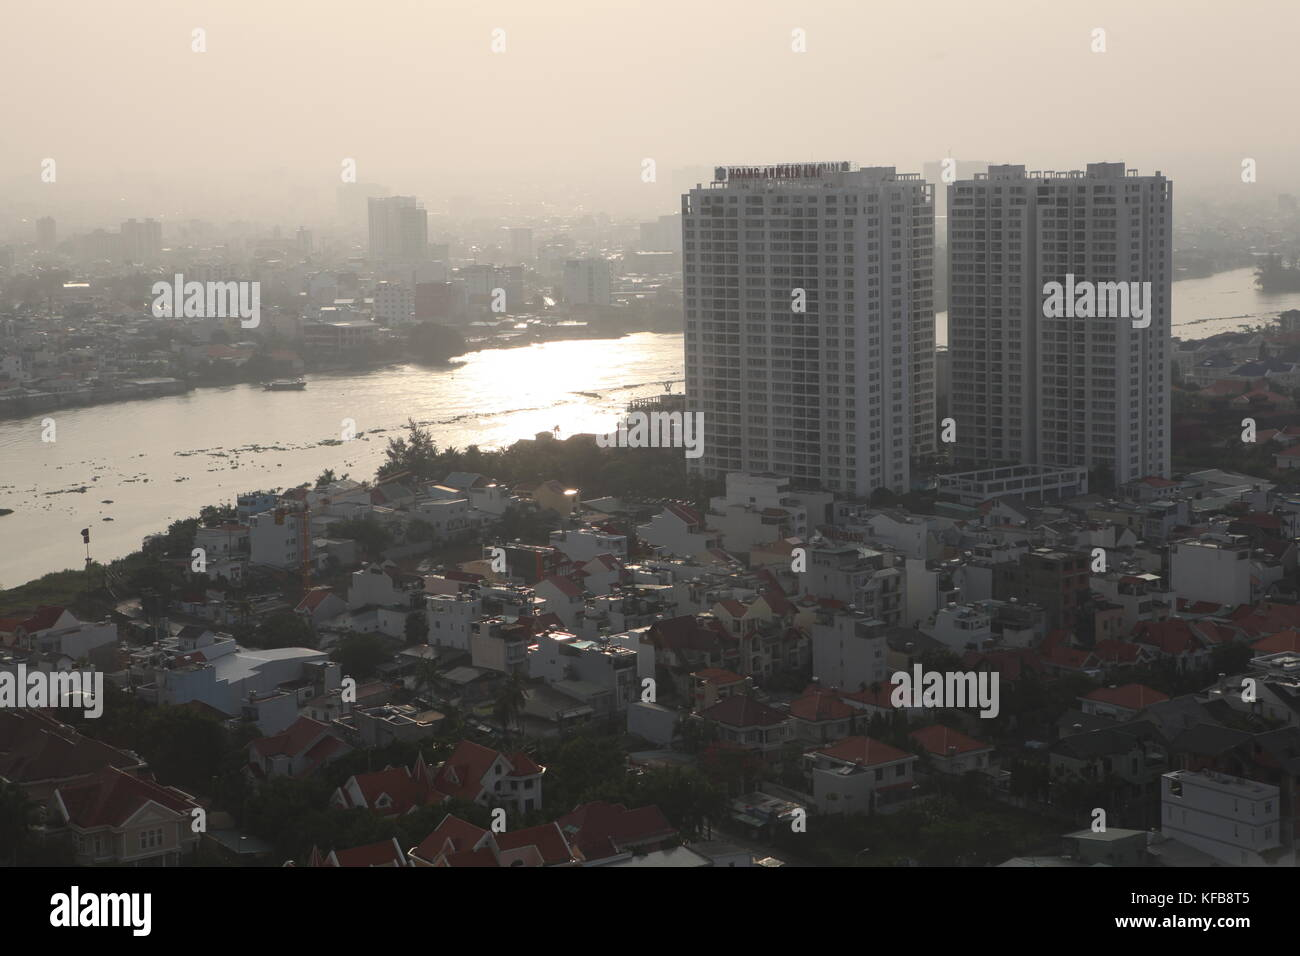 City skyline in Vietnam, The Saigon river, Ho Chi Minh City - Stock Image